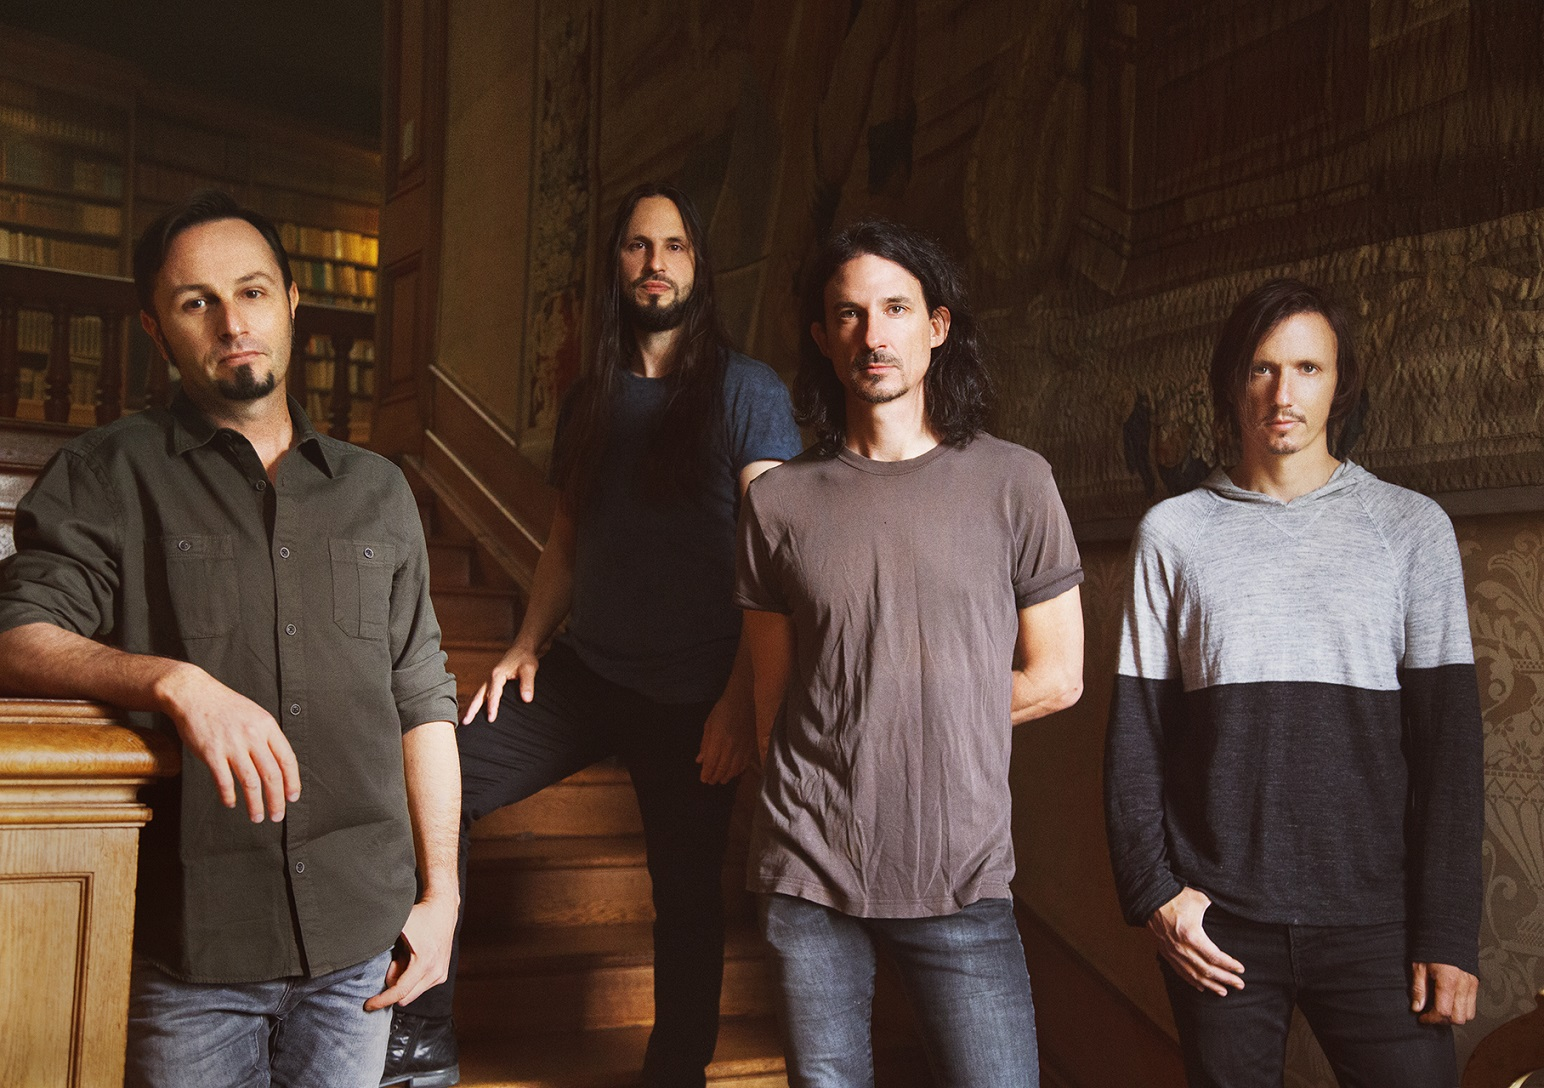 Gojira announce fall U.S. headlining tour w/ Knocked Loose, Alien Weaponry